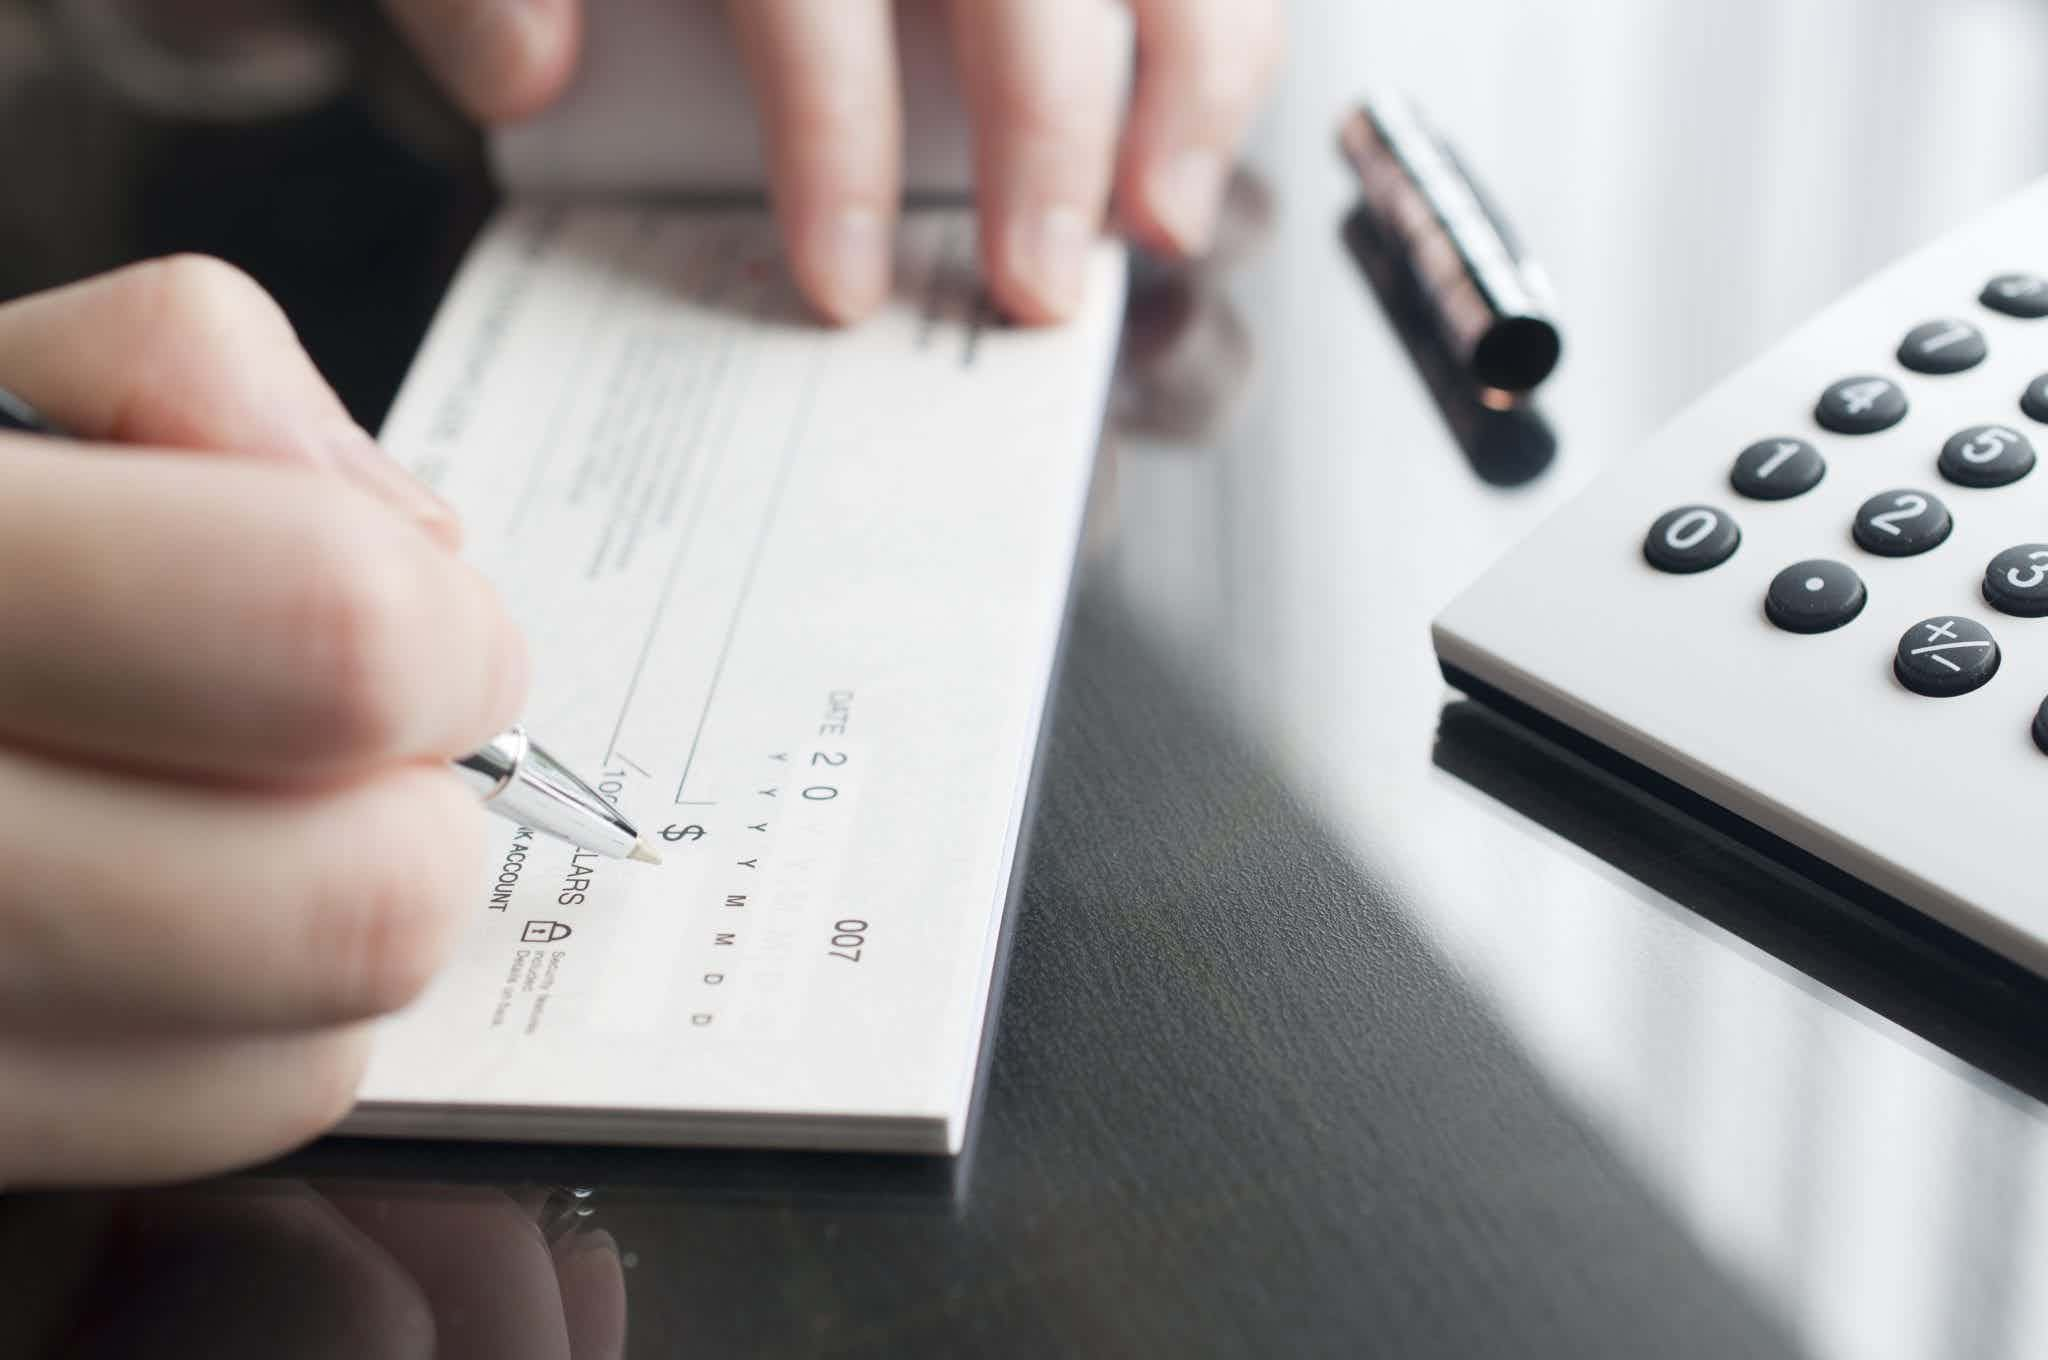 Hands of a person writing a check